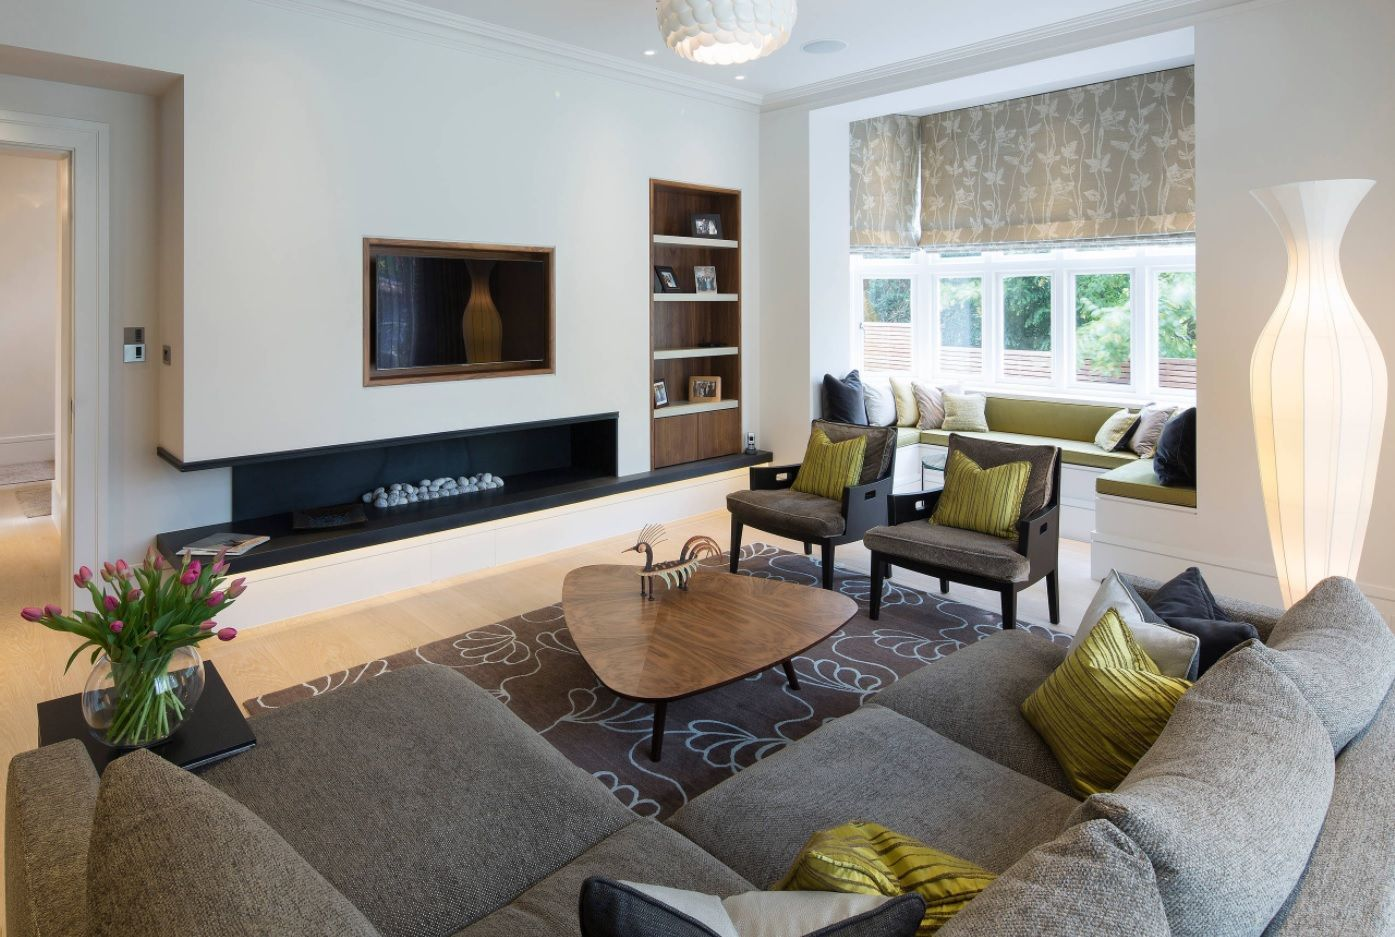 Modern style for the large living room with coffee table of unusual form